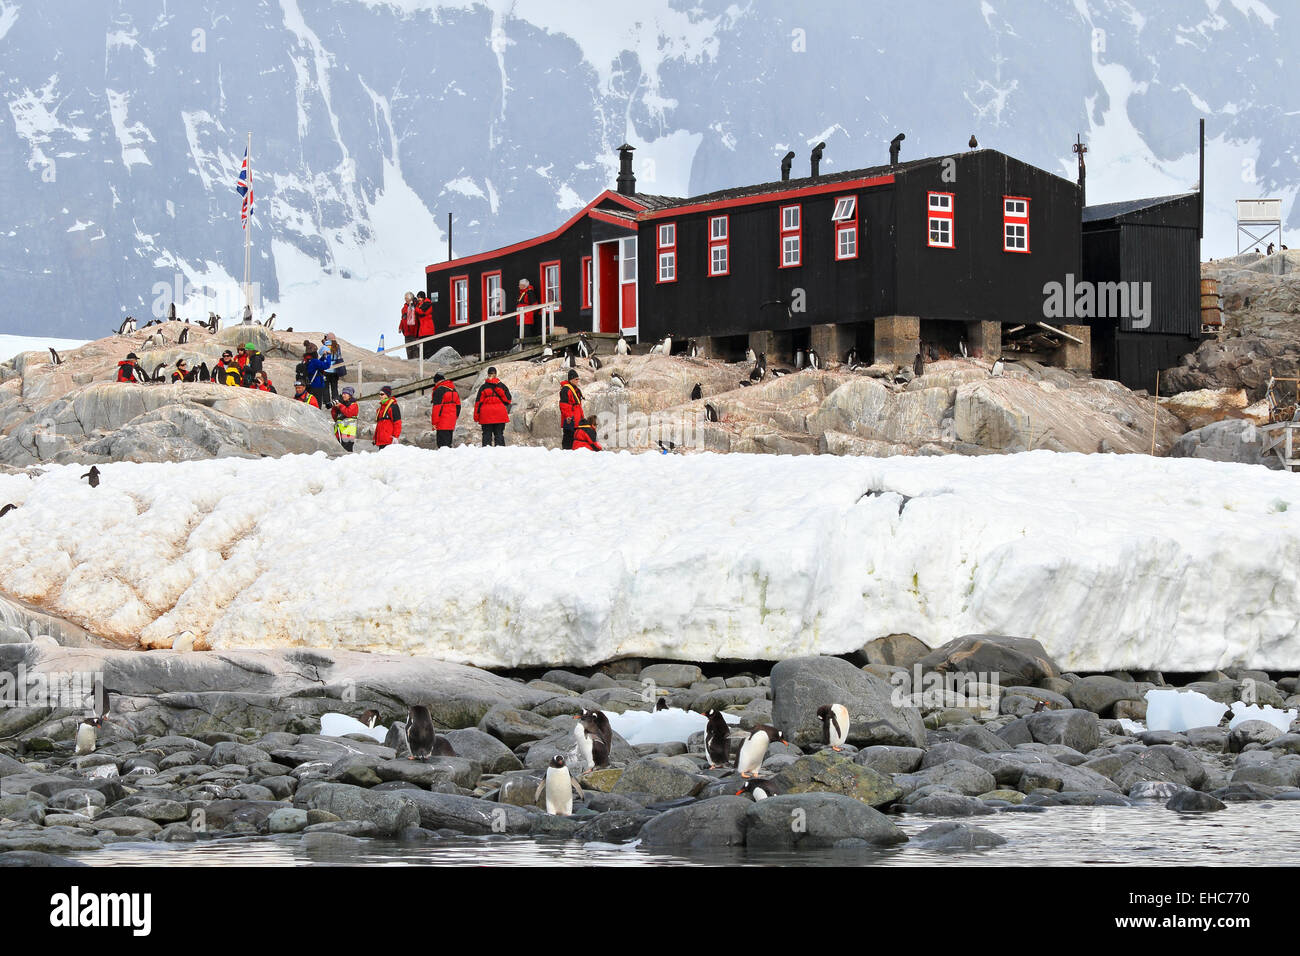 Penguin Post Office the old research station at Port Lockroy, Antarctica. Stock Photo